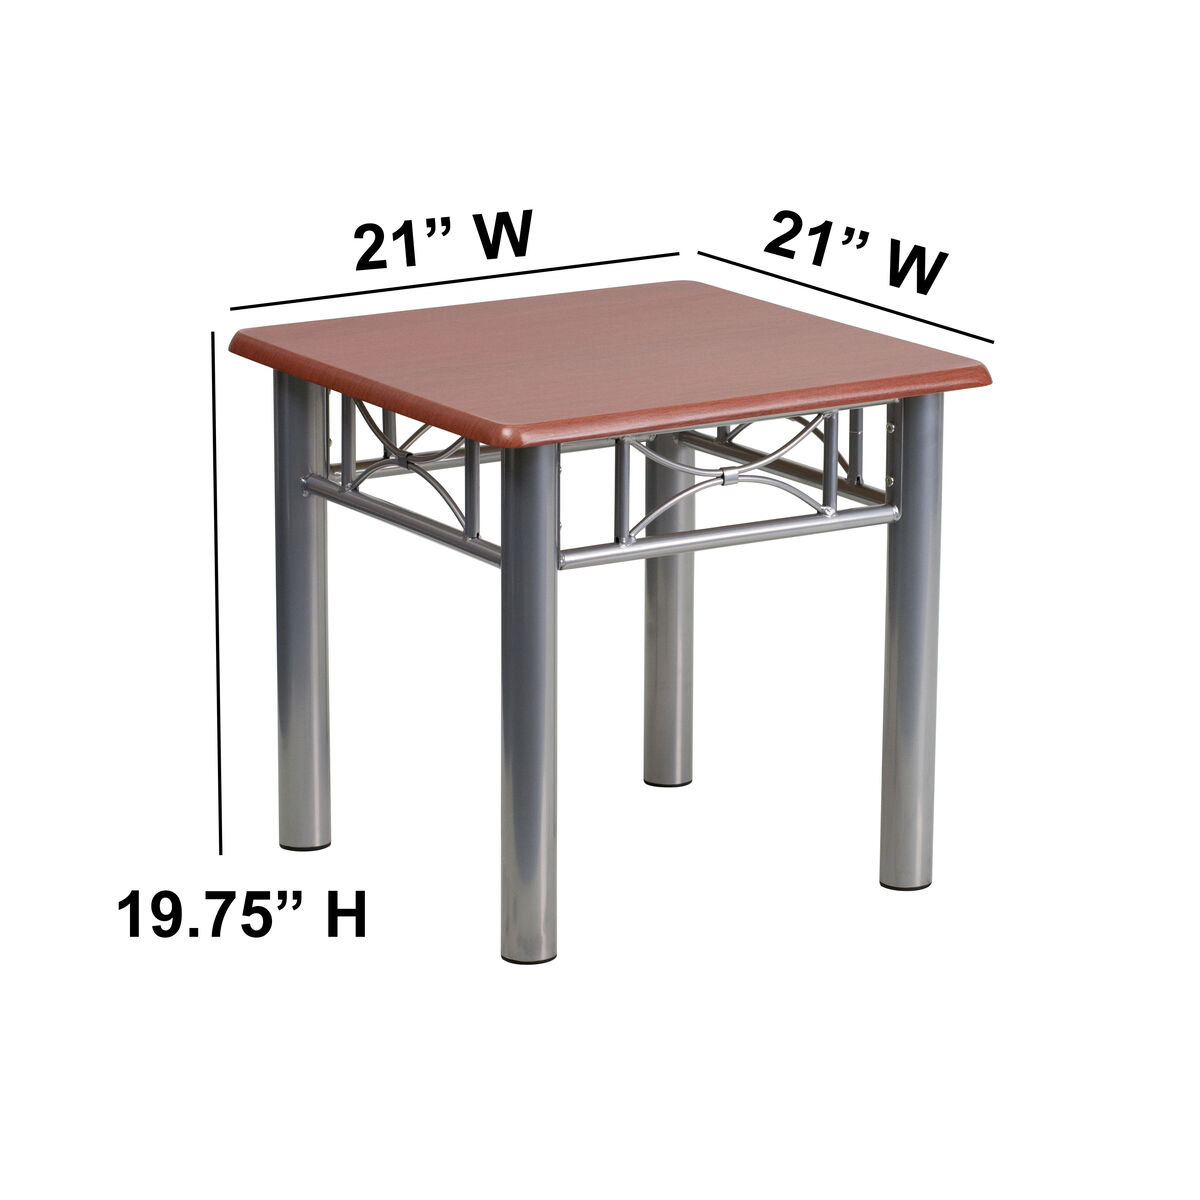 Mahogany laminate end table with silver steel frame inset